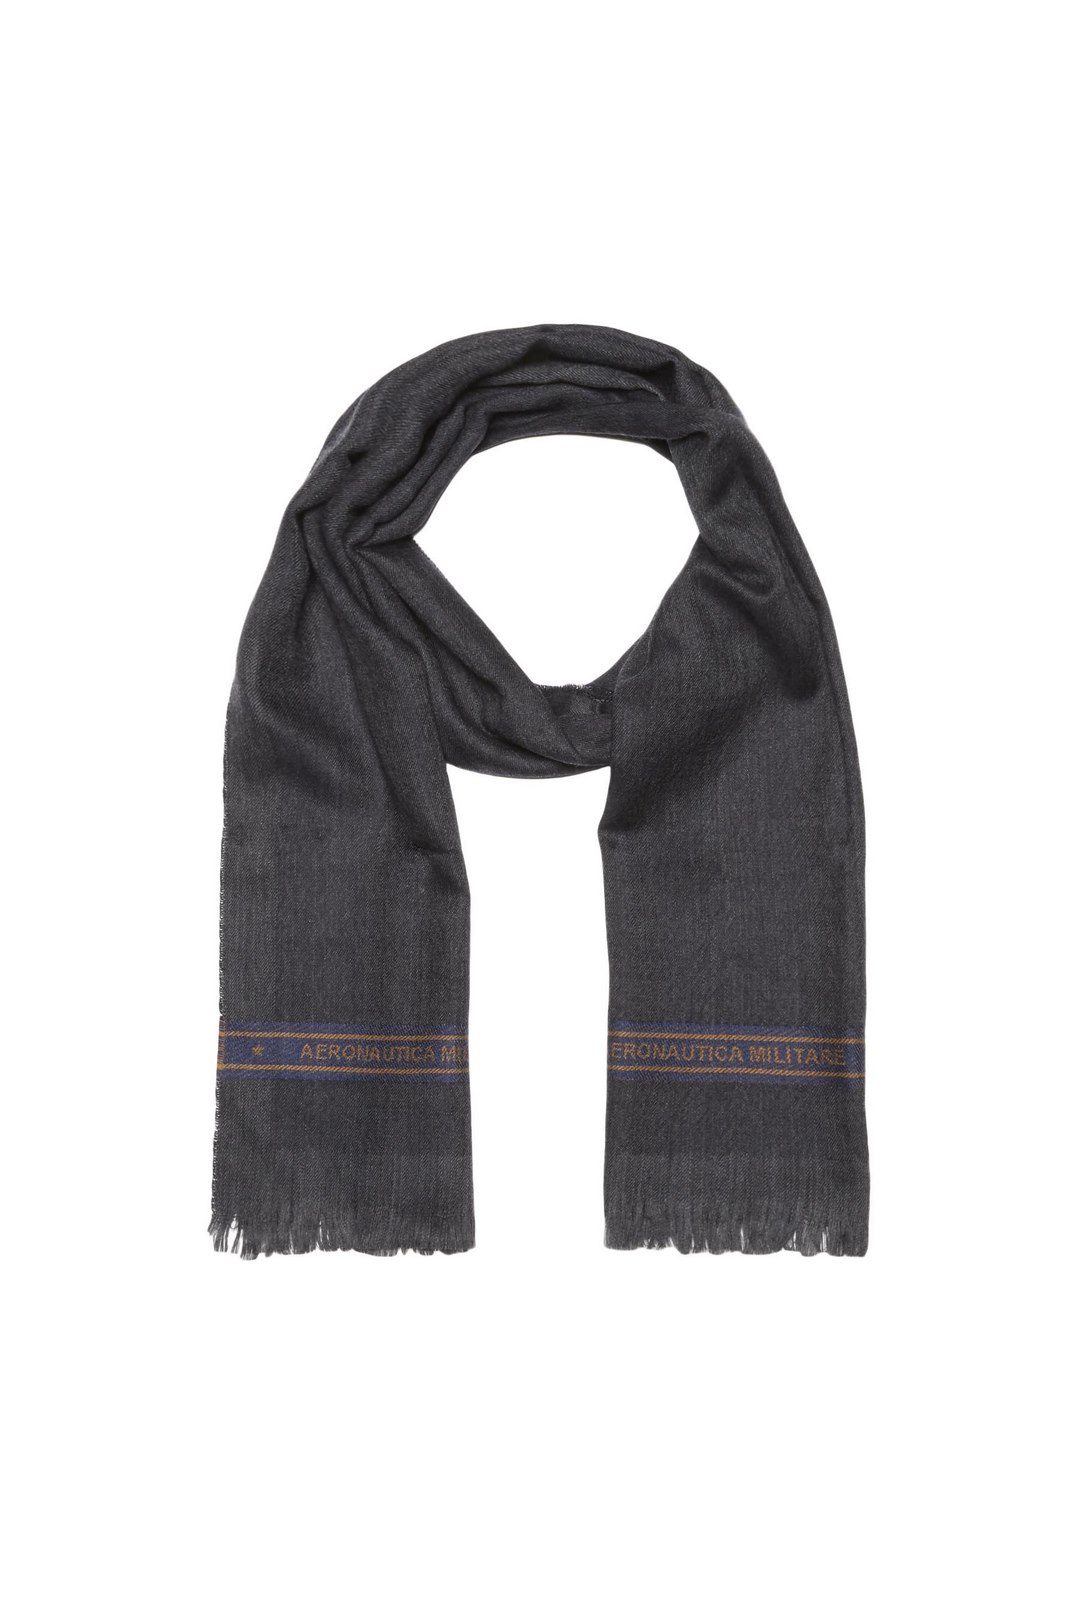 Embroidered wool scarf                   1